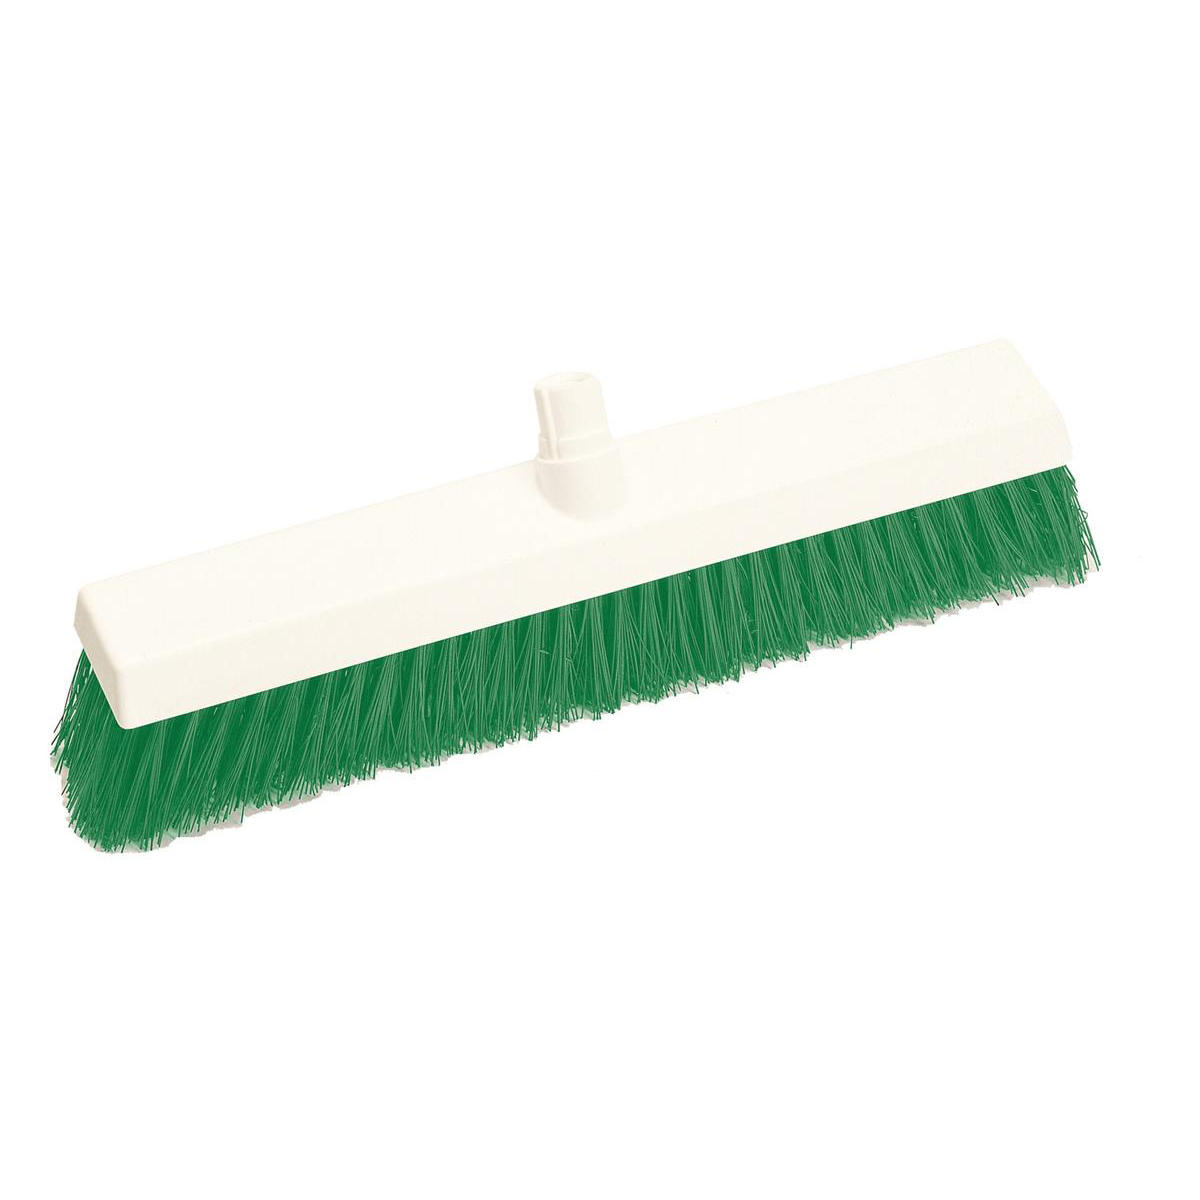 Scott Young Research Interchange Hygiene Soft Broom Head 12 Inch Green Ref BHY12SG